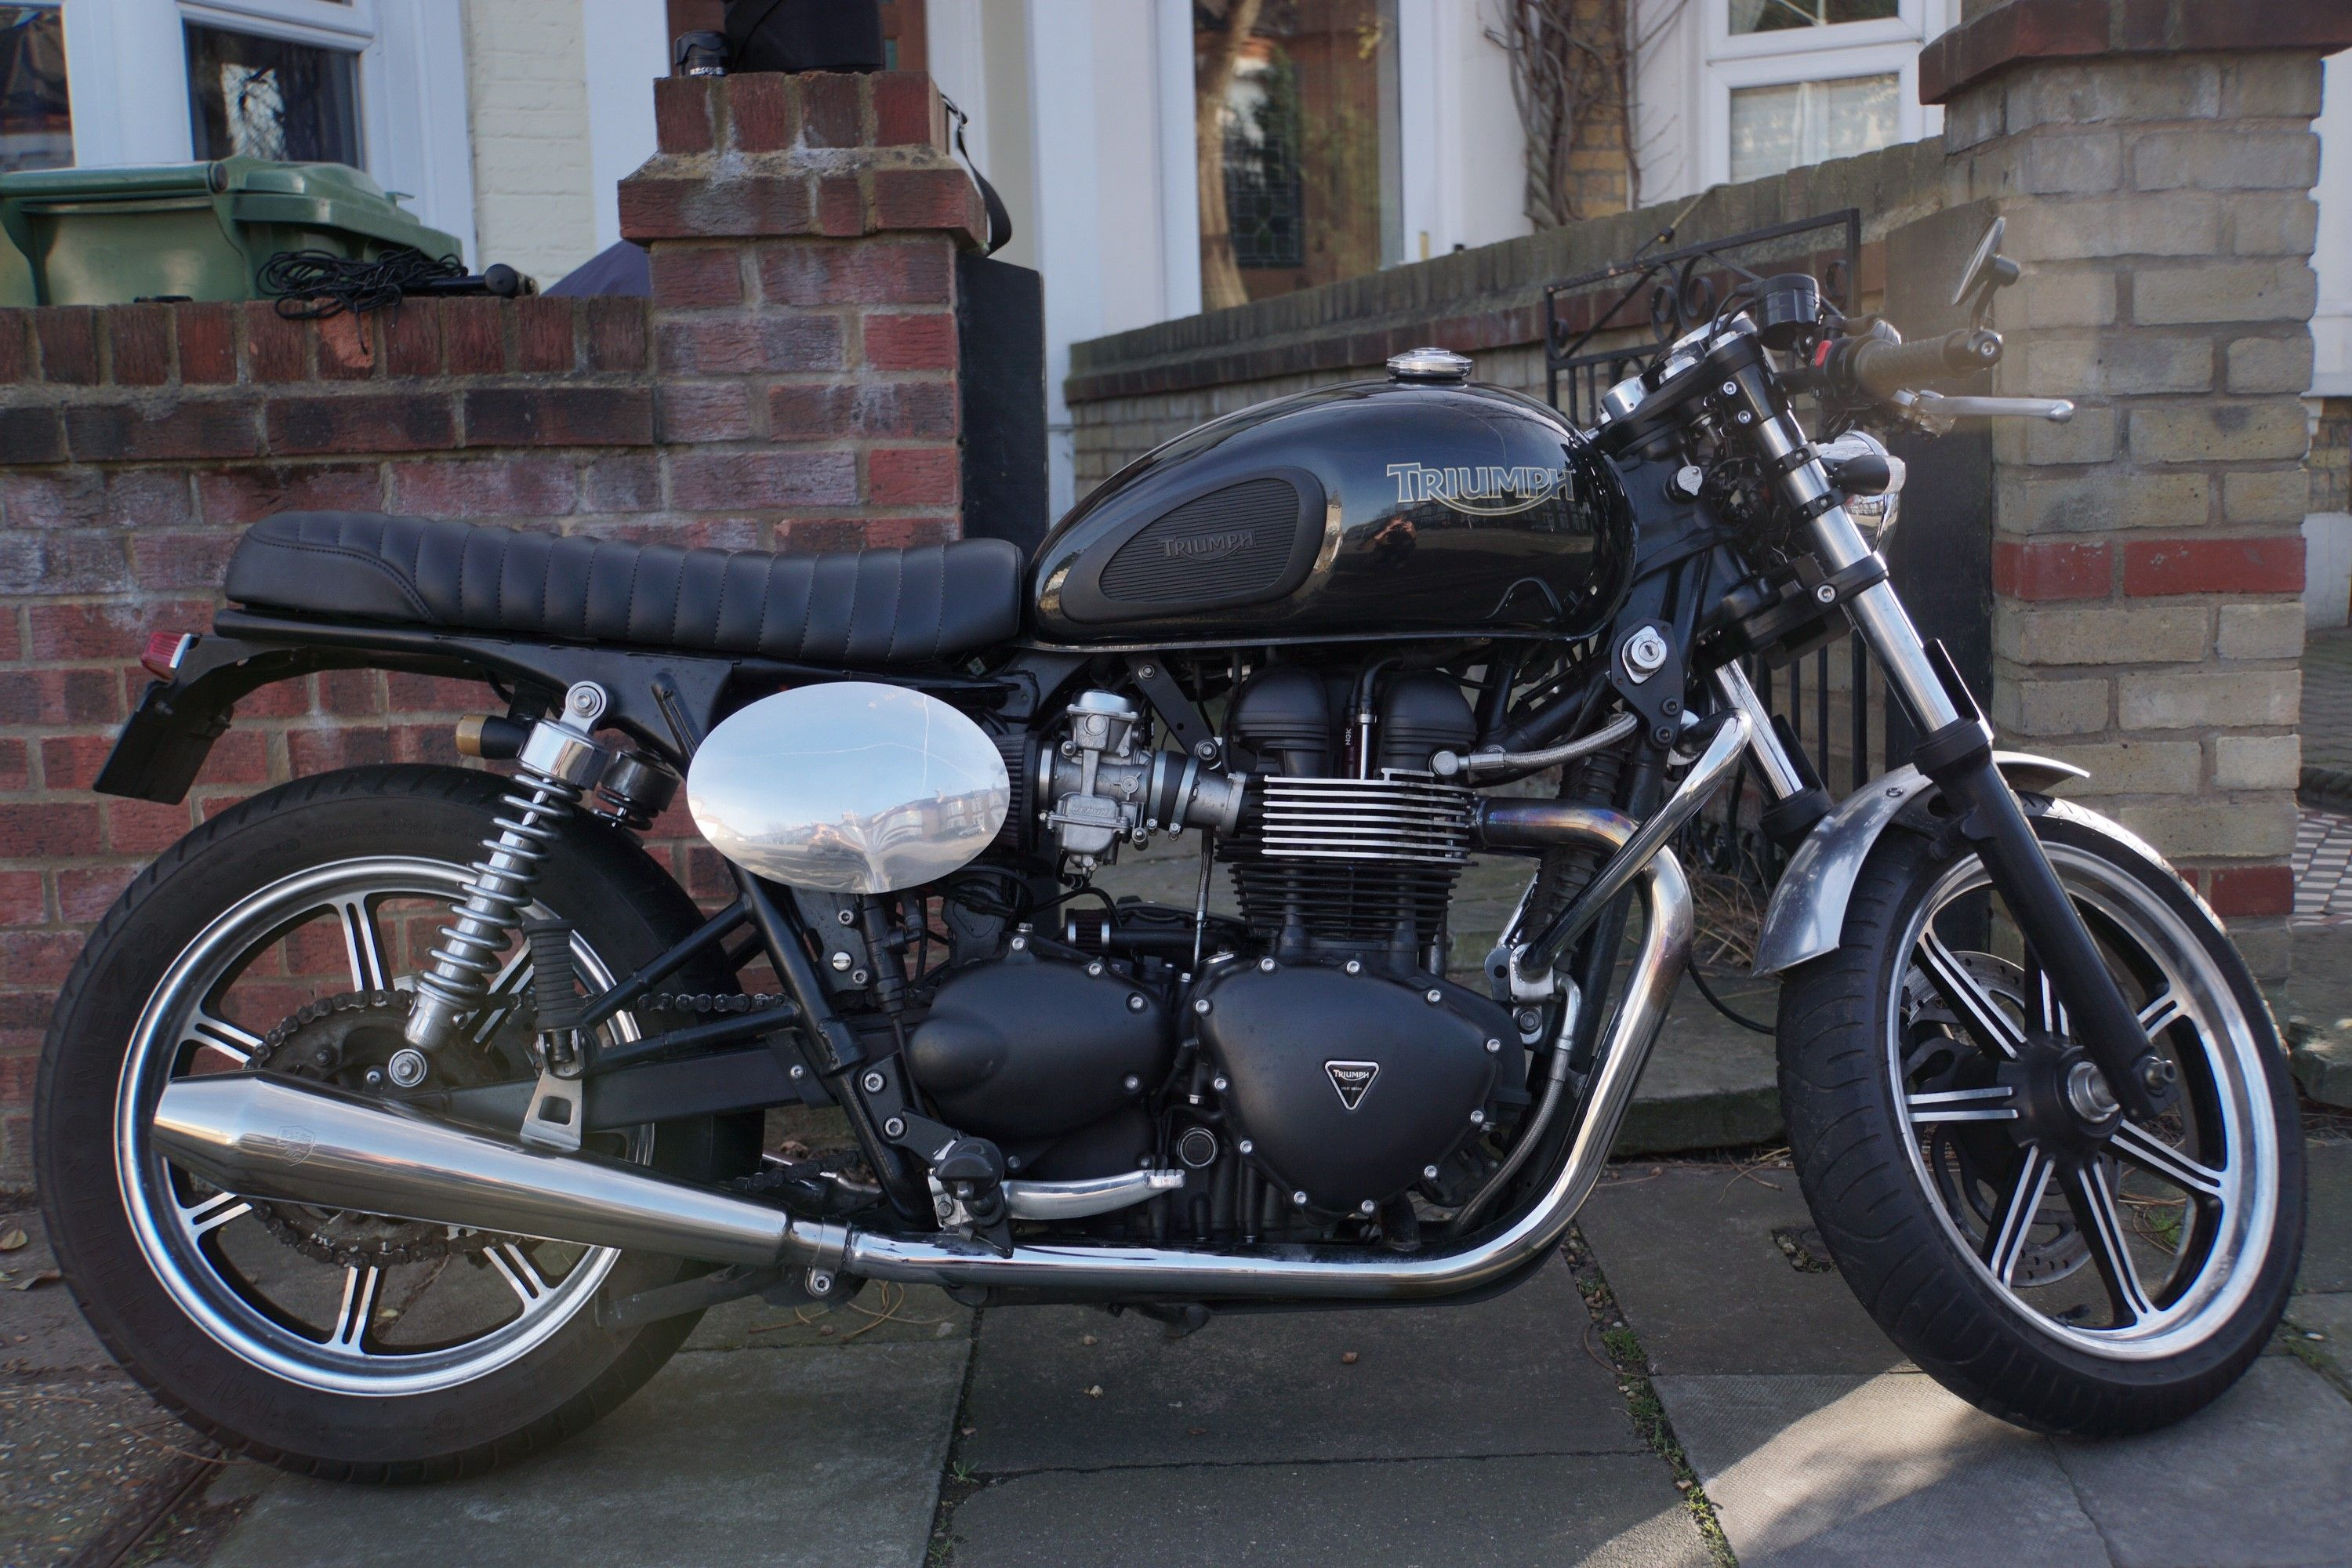 Triumph Bonneville Efi Cafe Racer The Bike Has Had A Lot Of Time